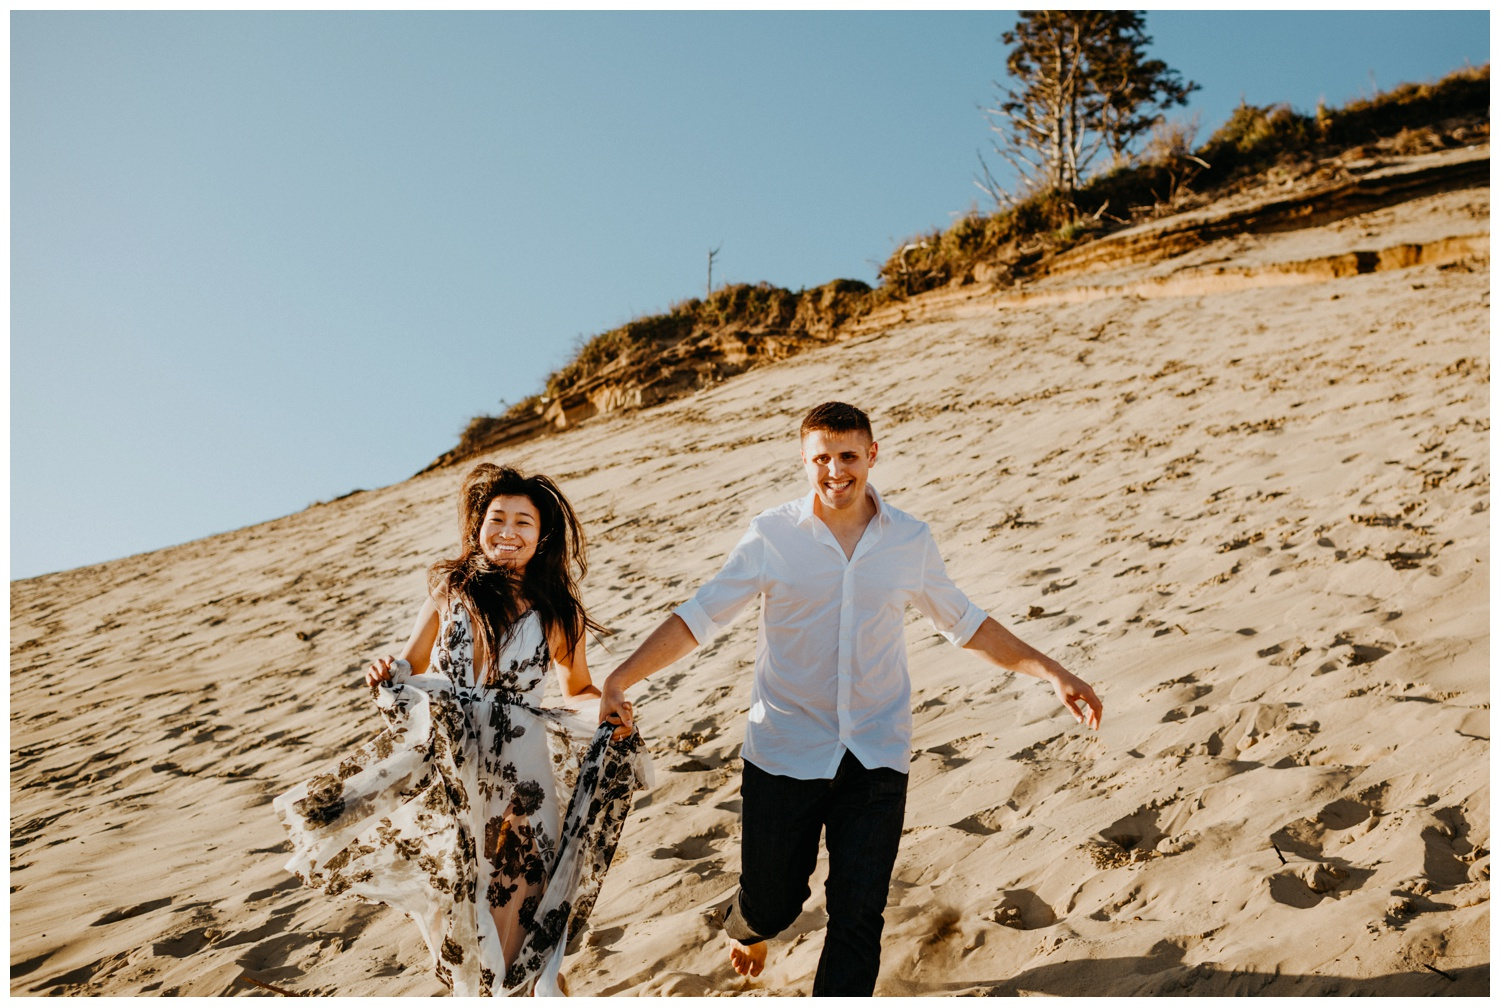 cape_kiwanda_beach_engagement_shoot_0064.jpg